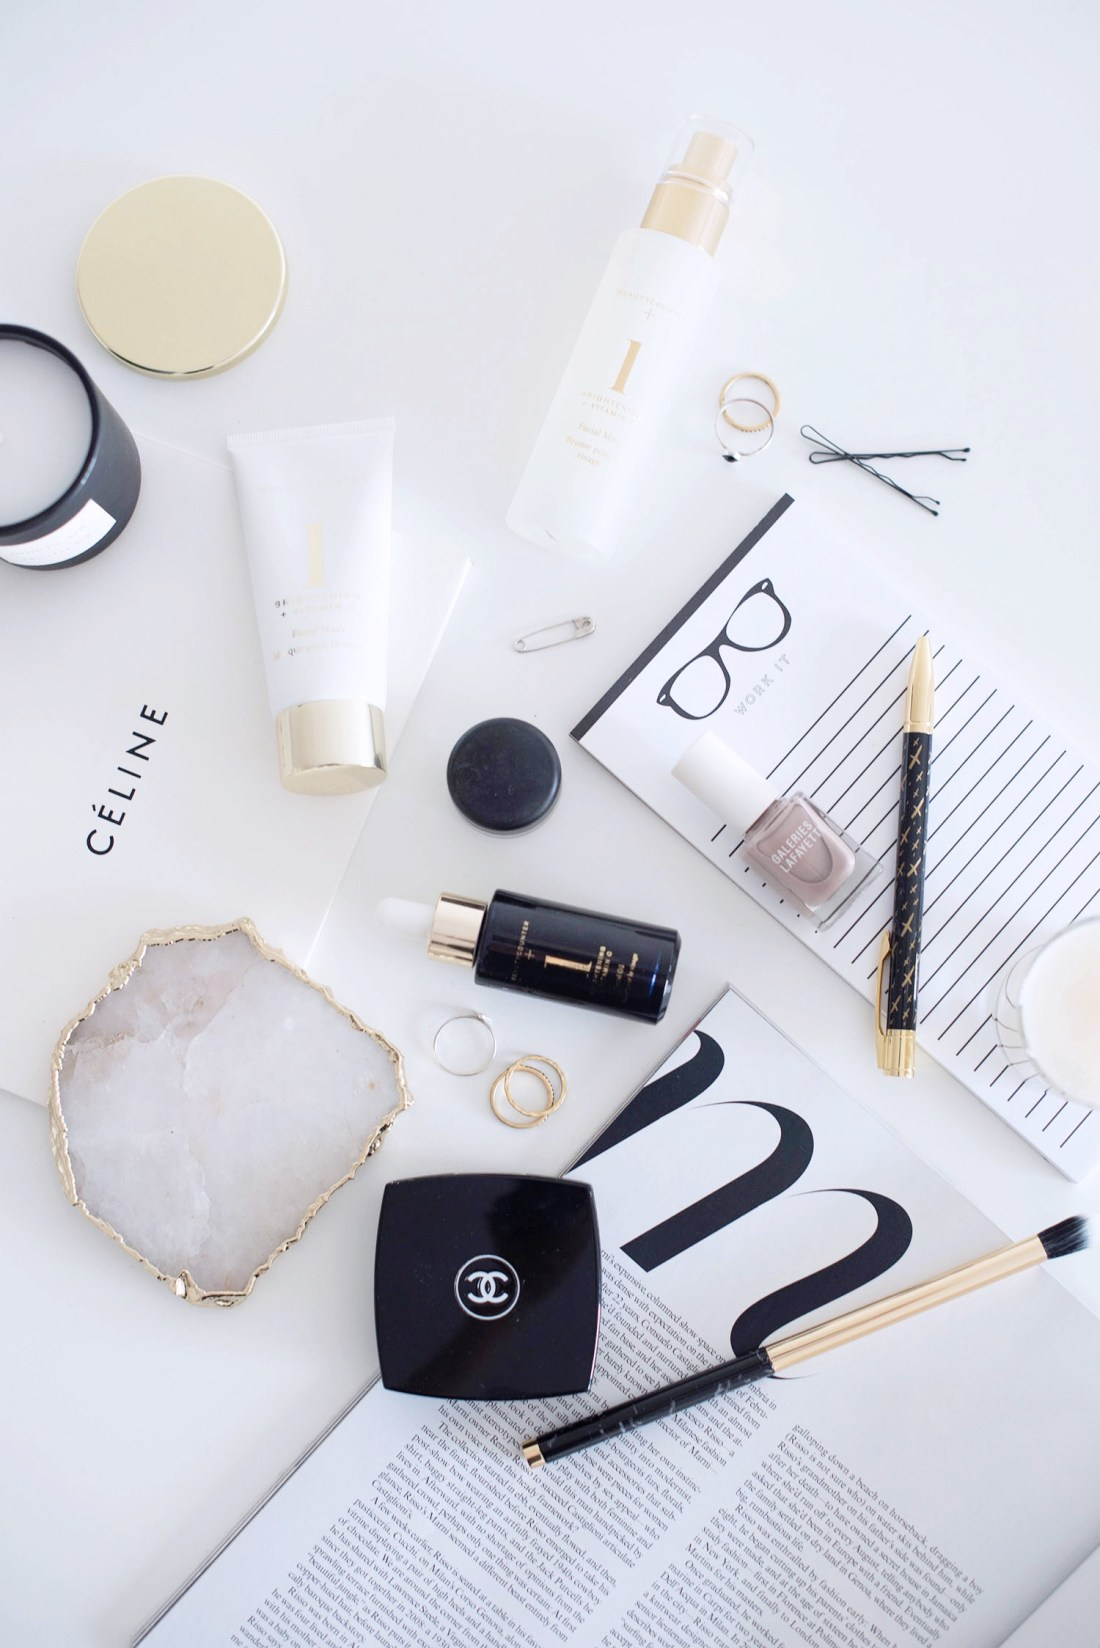 Flatlay featuring Beautycounter face oil, Beautycounter face mask and Chanel blush, captured by Winnipeg beauty blogger Cee Fardoe of Coco & Vera